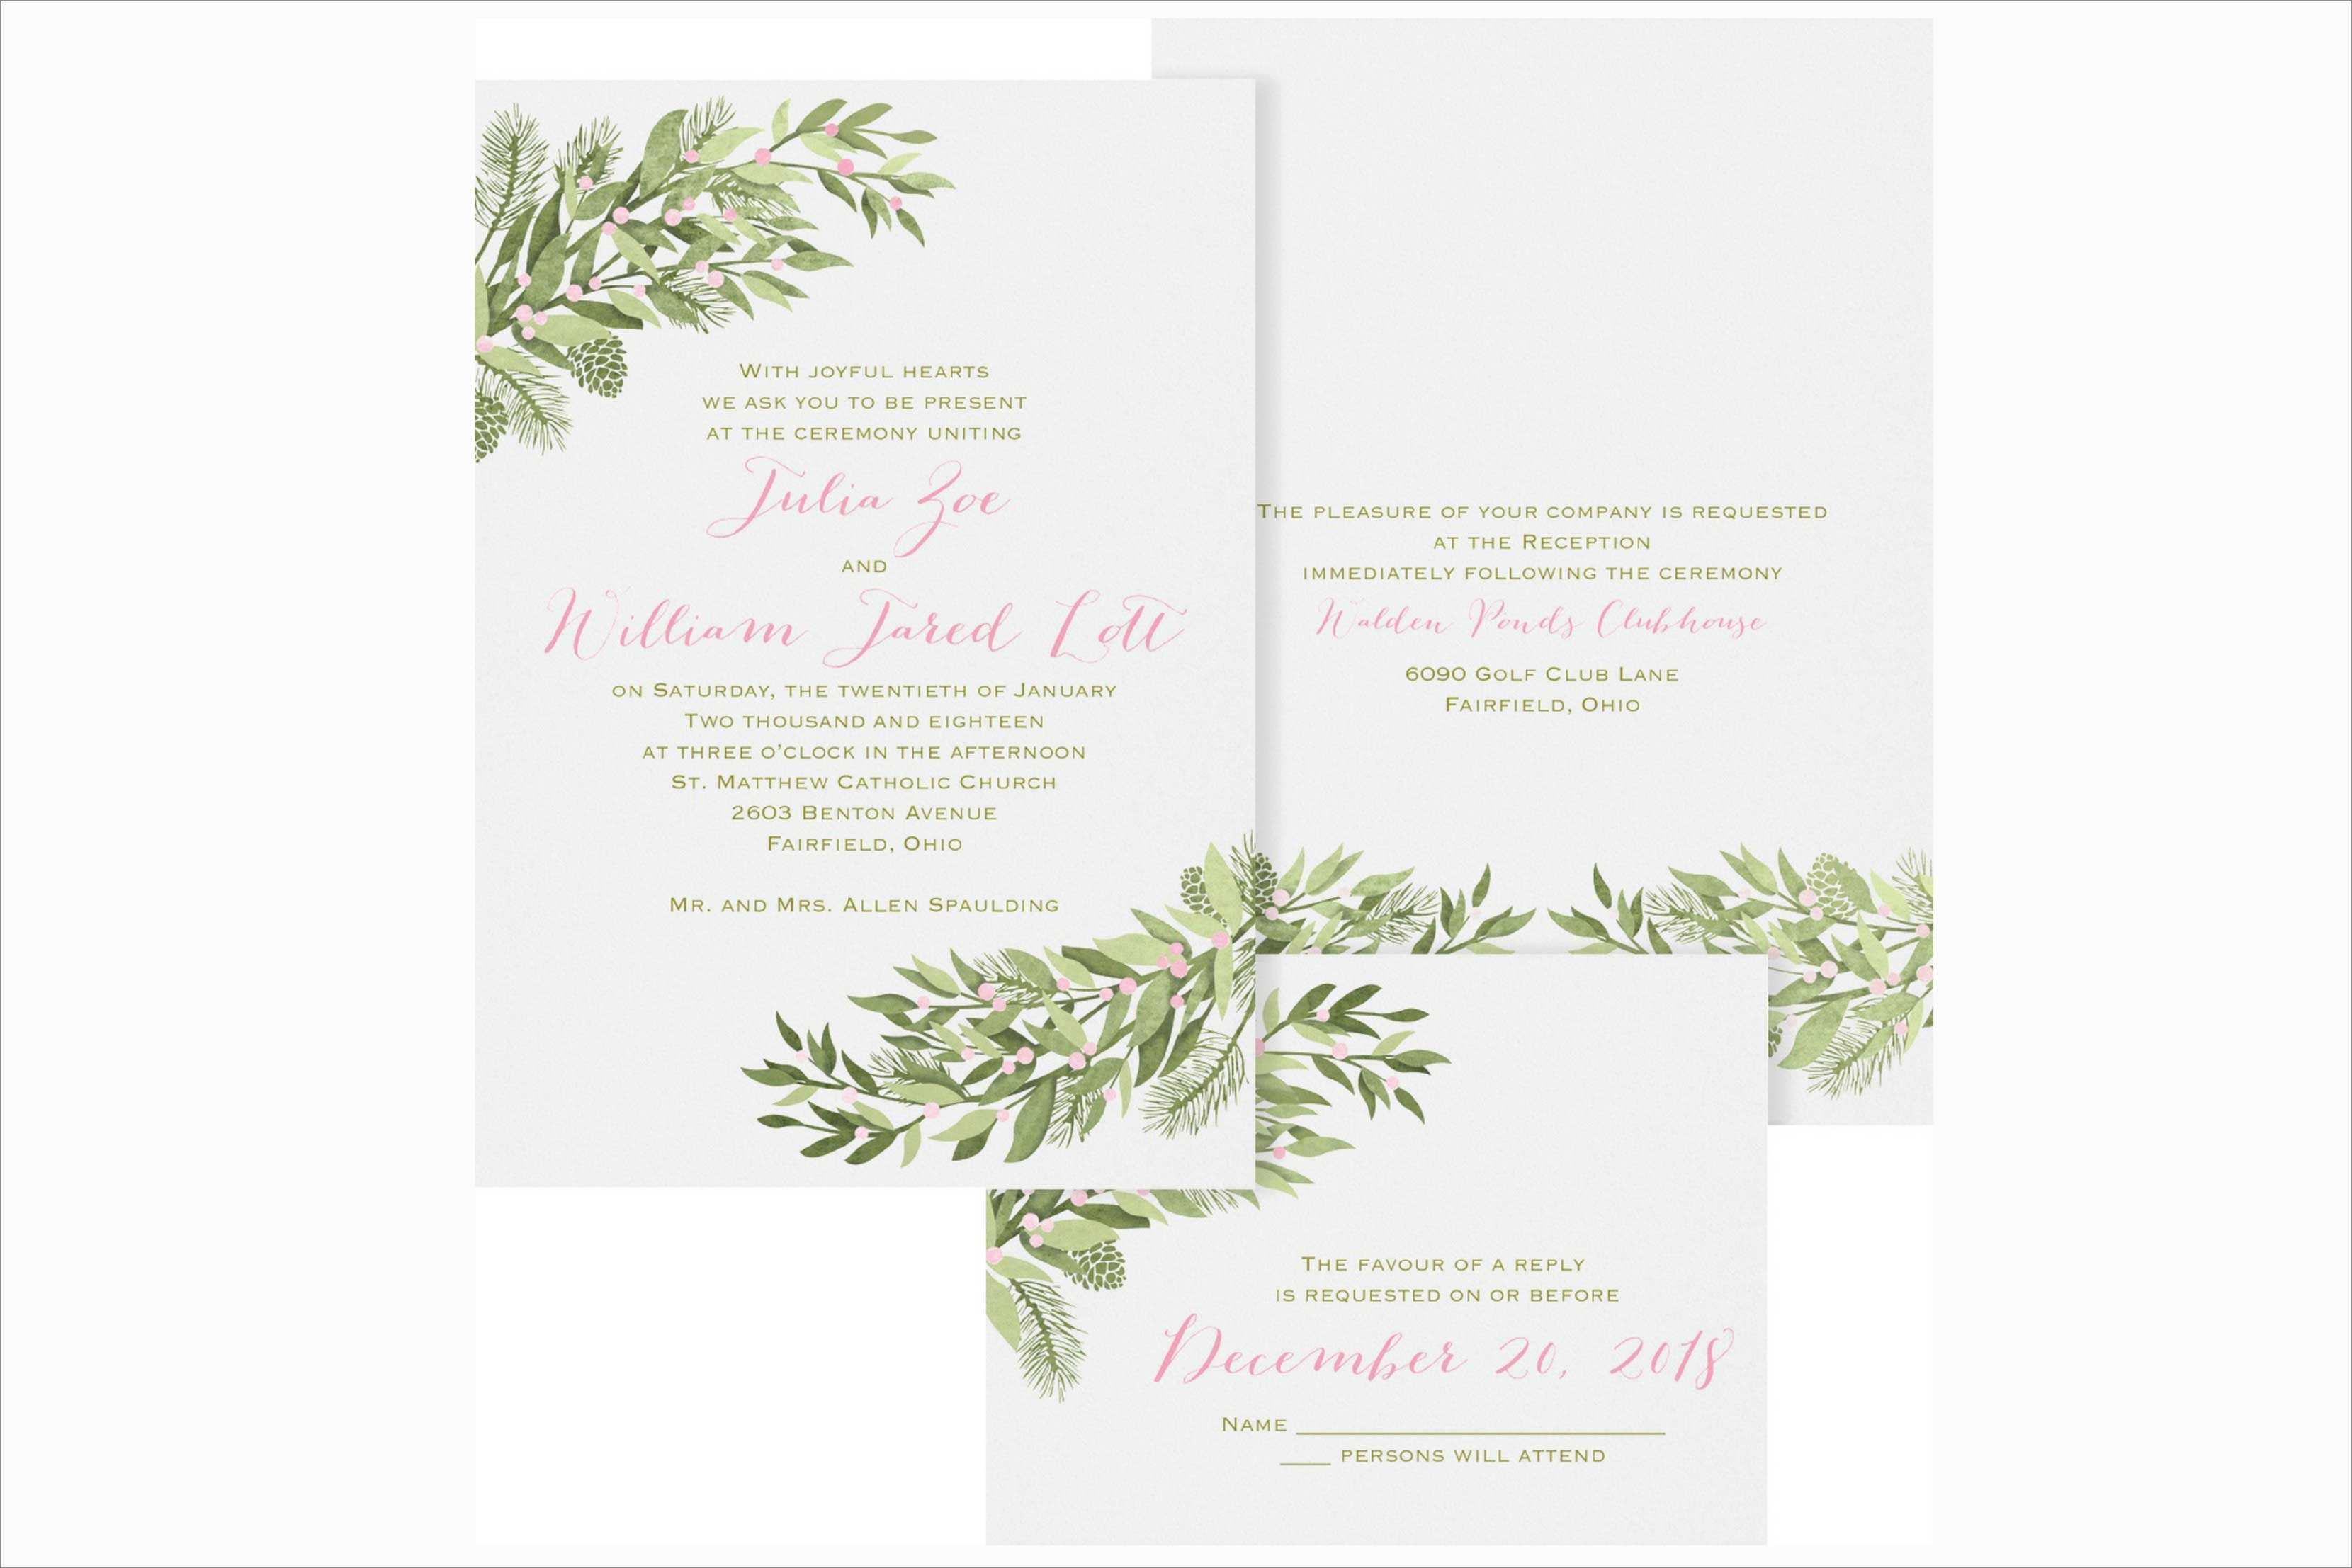 carlson craft winter berries winter wedding invitation - Weddings Invitations